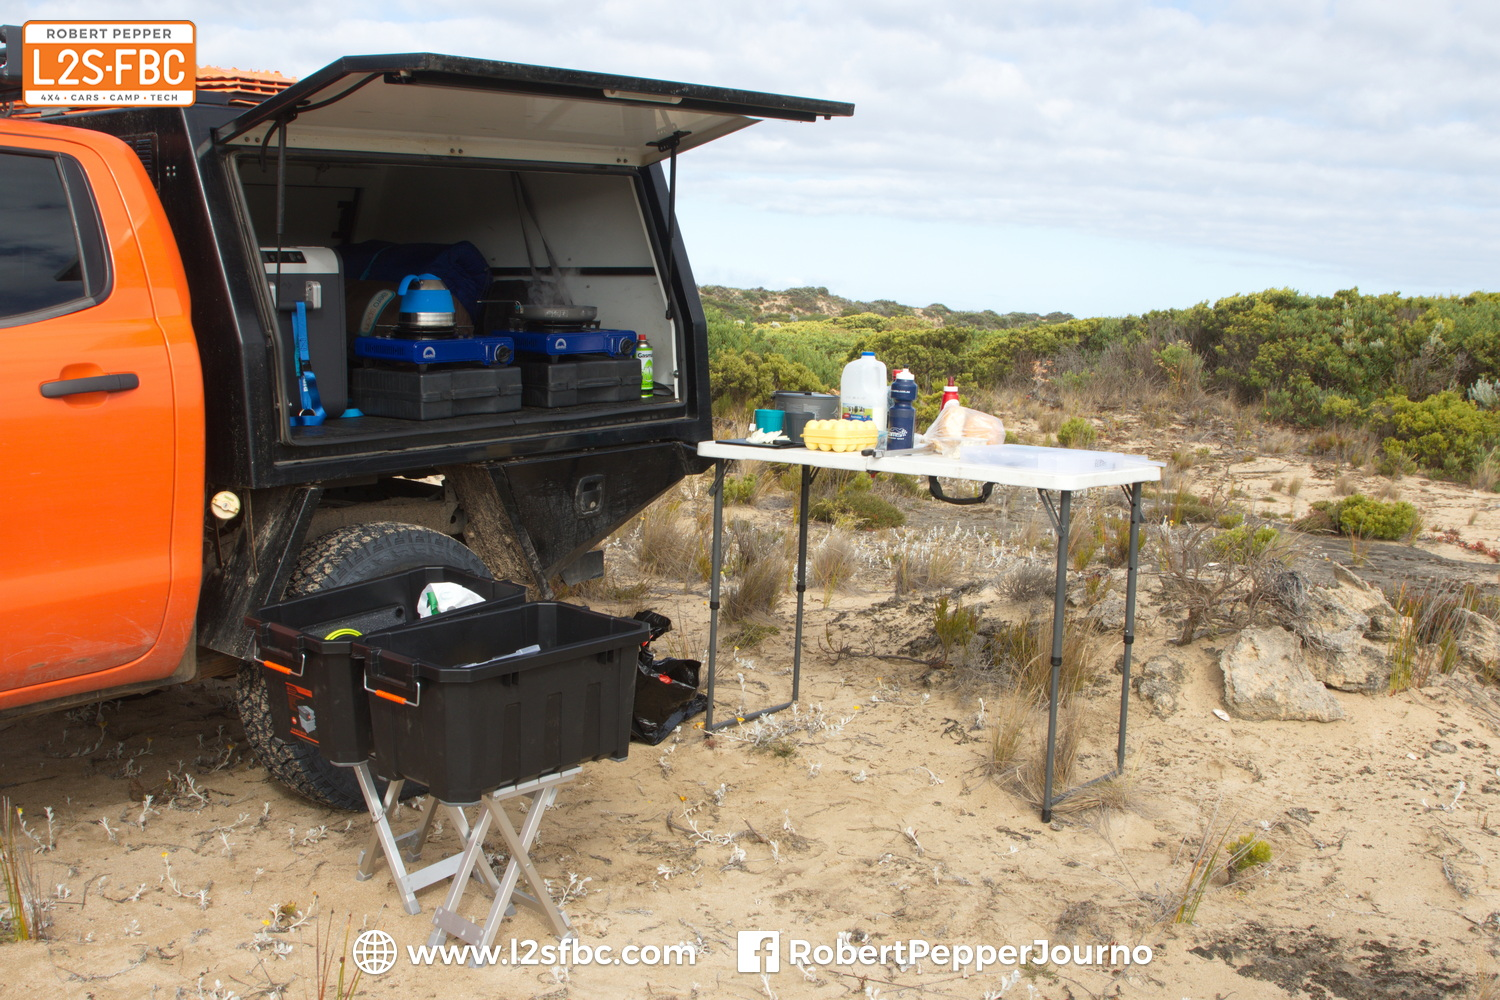 Camping with a ute service body